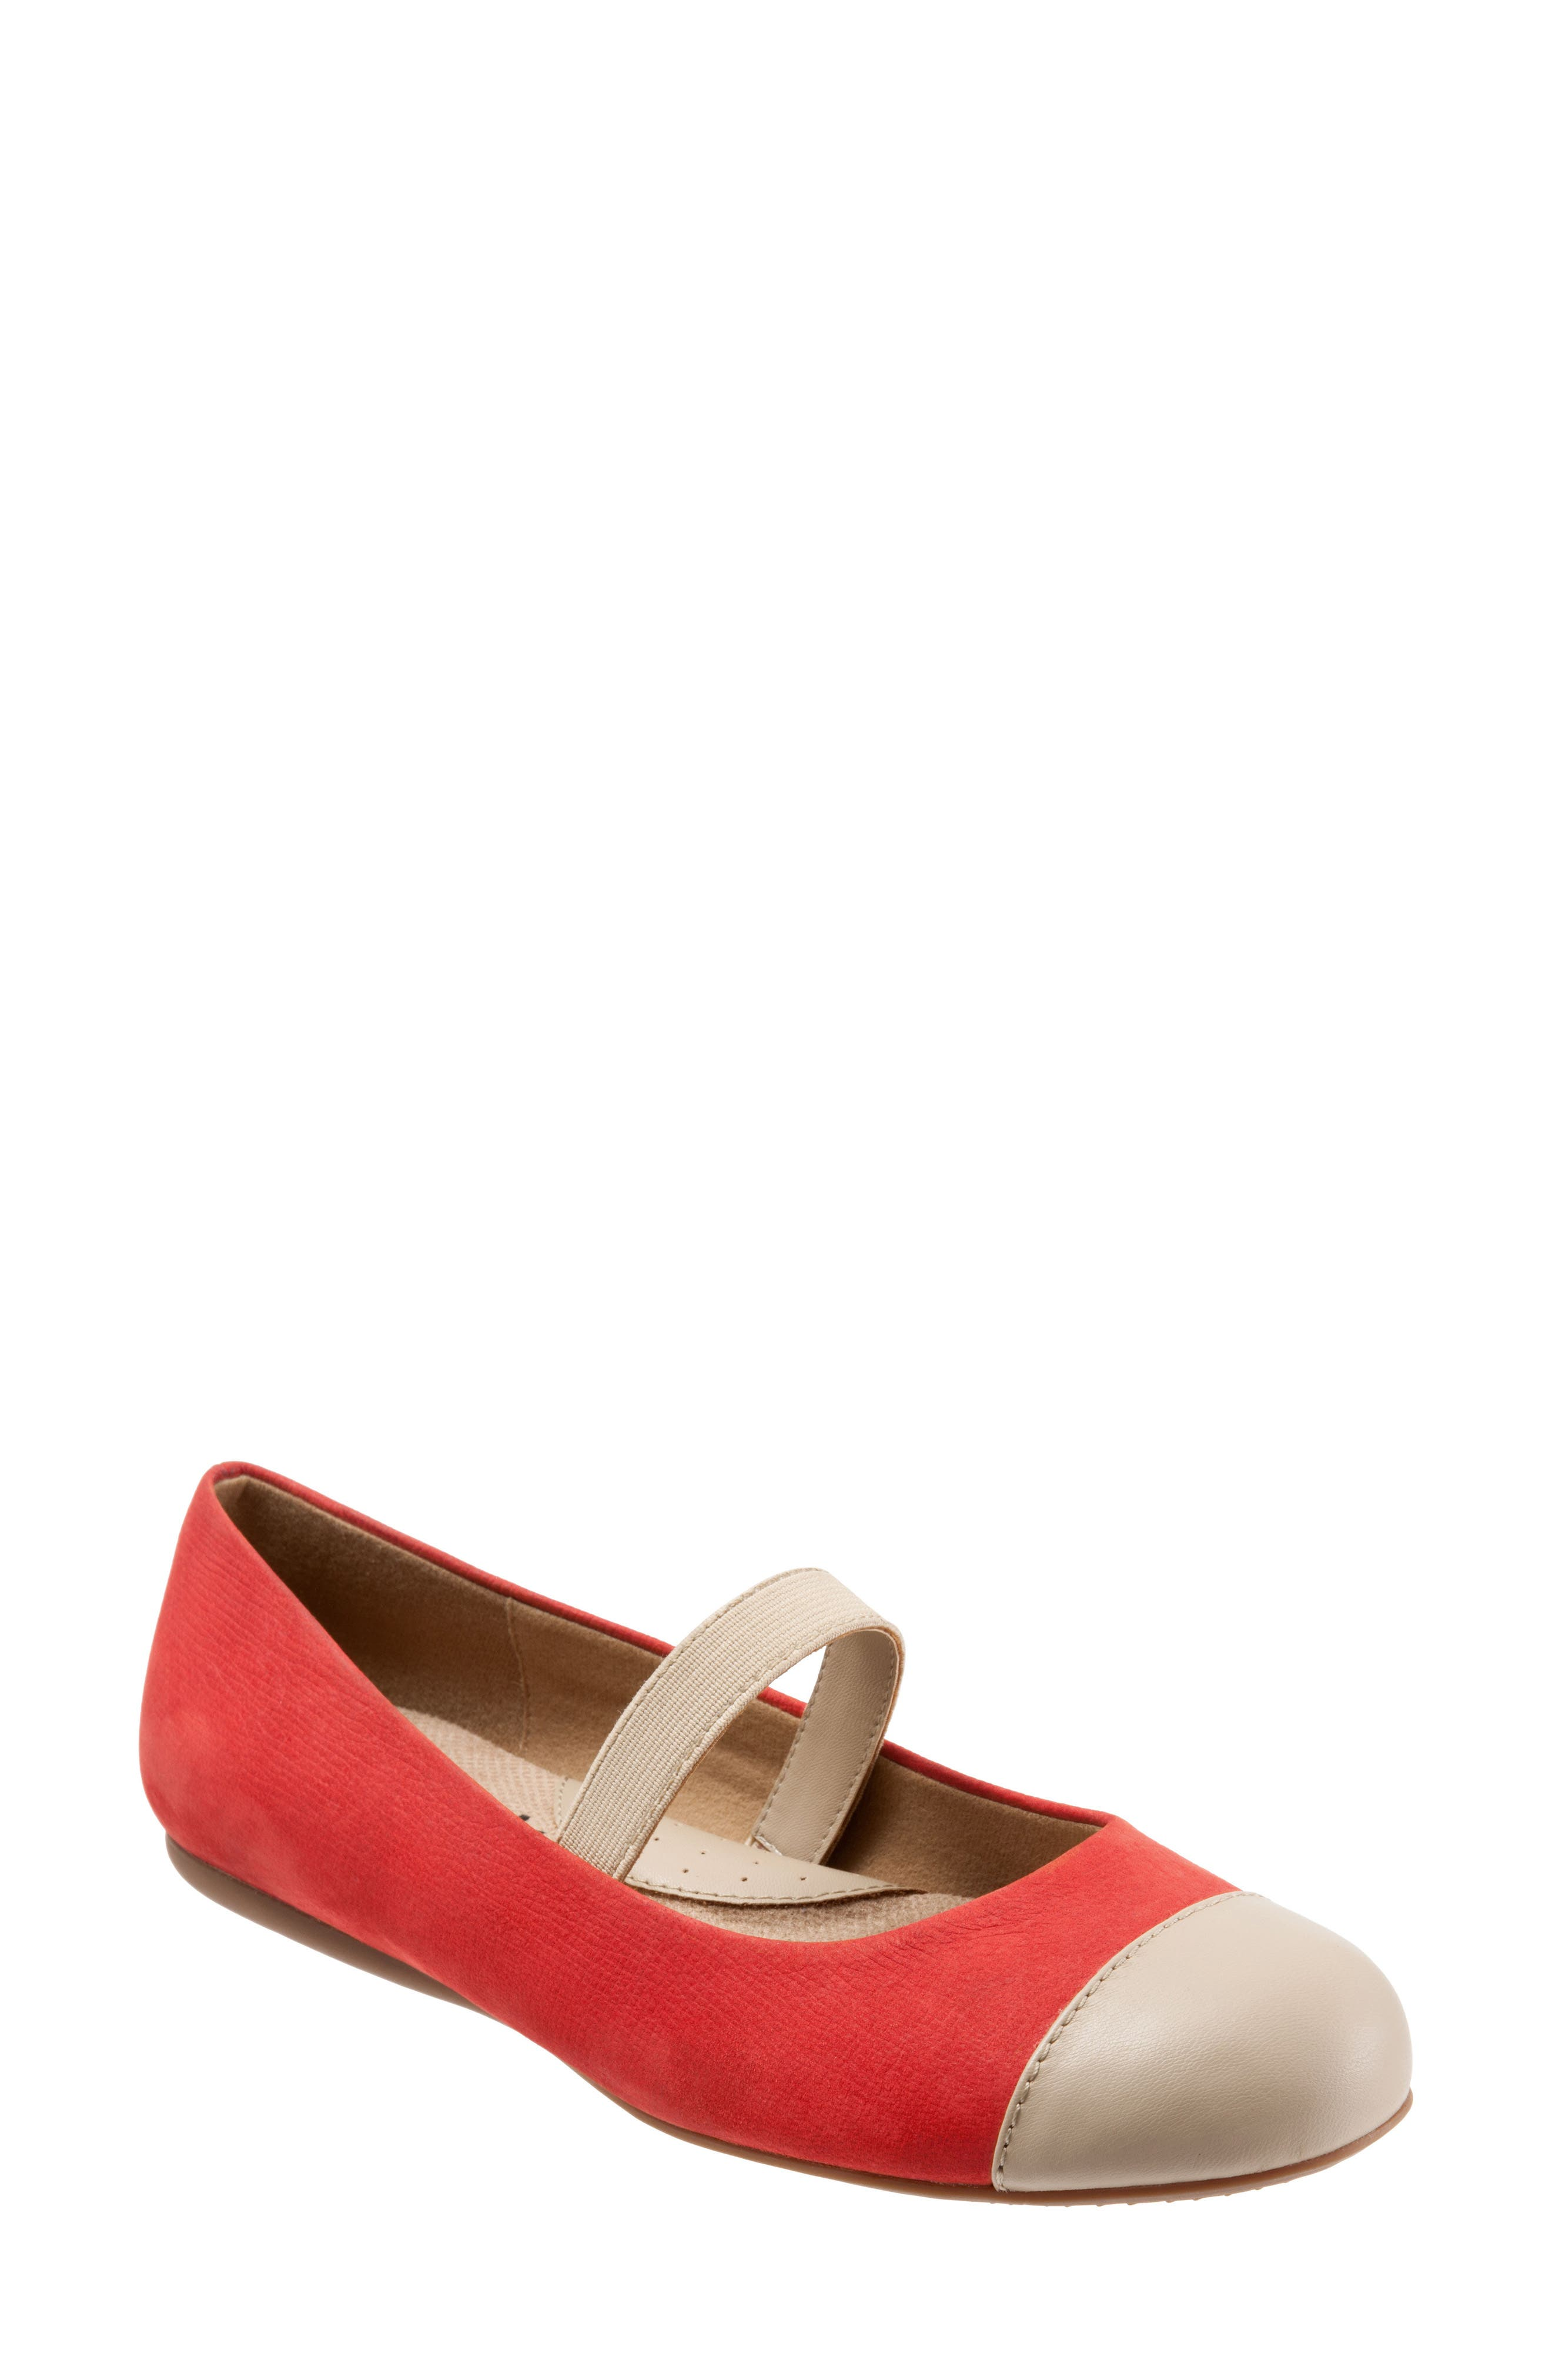 Napa Mary Jane Flat,                         Main,                         color, Red/ Nude Leather